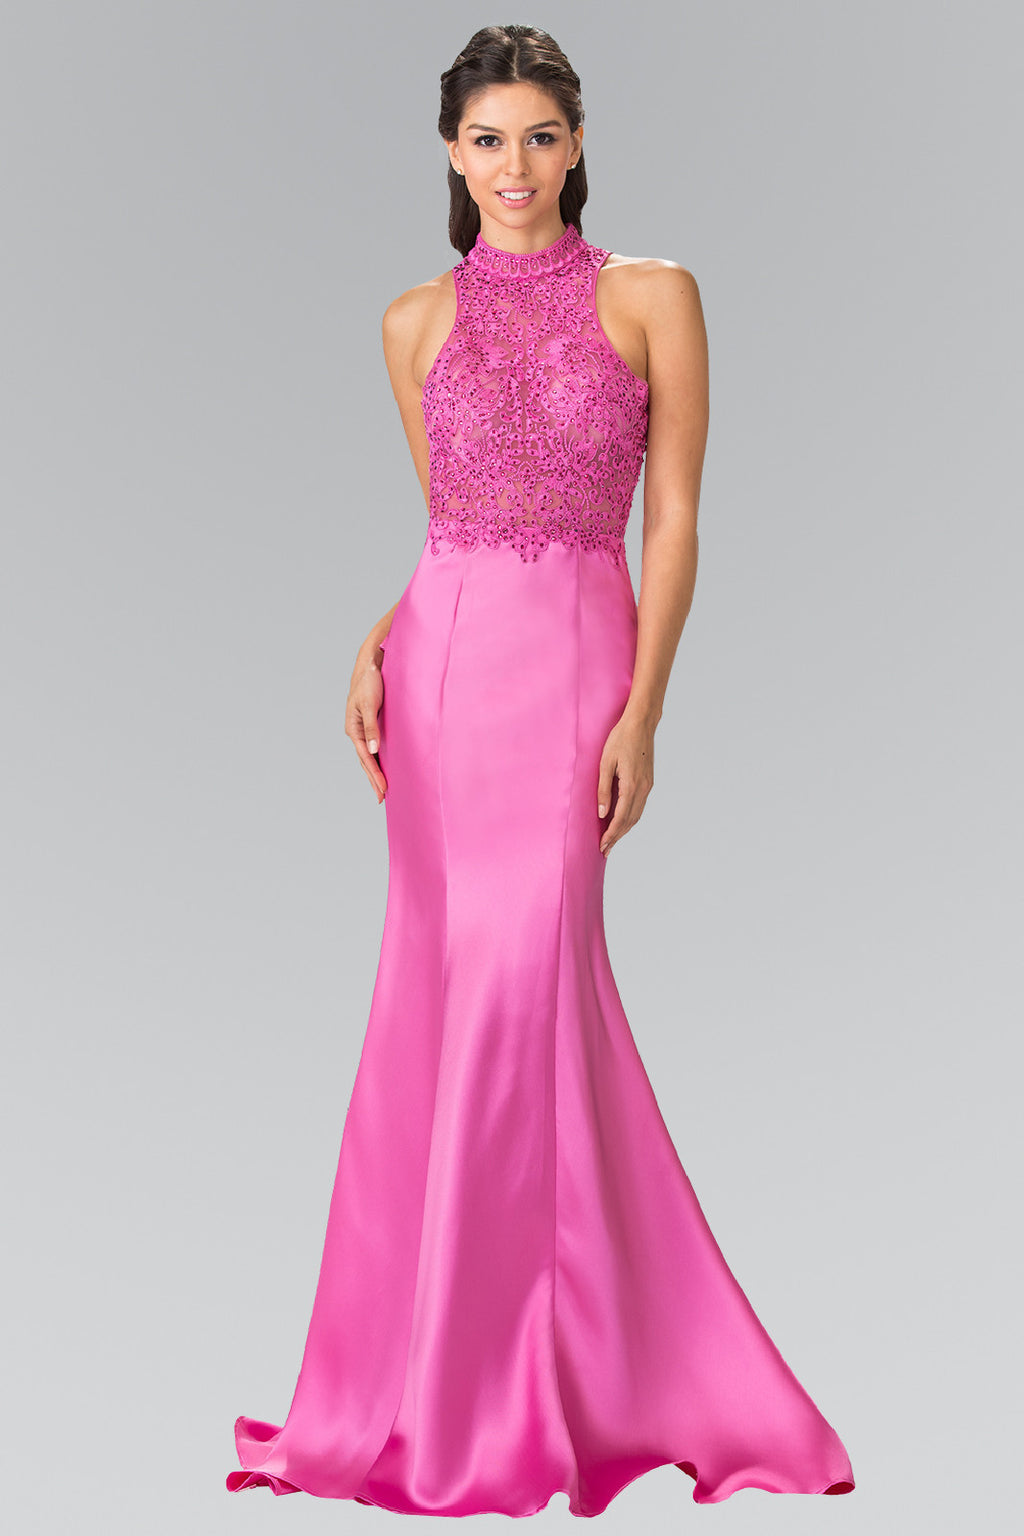 Sexy Mermaid Prom Dress & formal dress #gl2227 - Simply Fab Dress